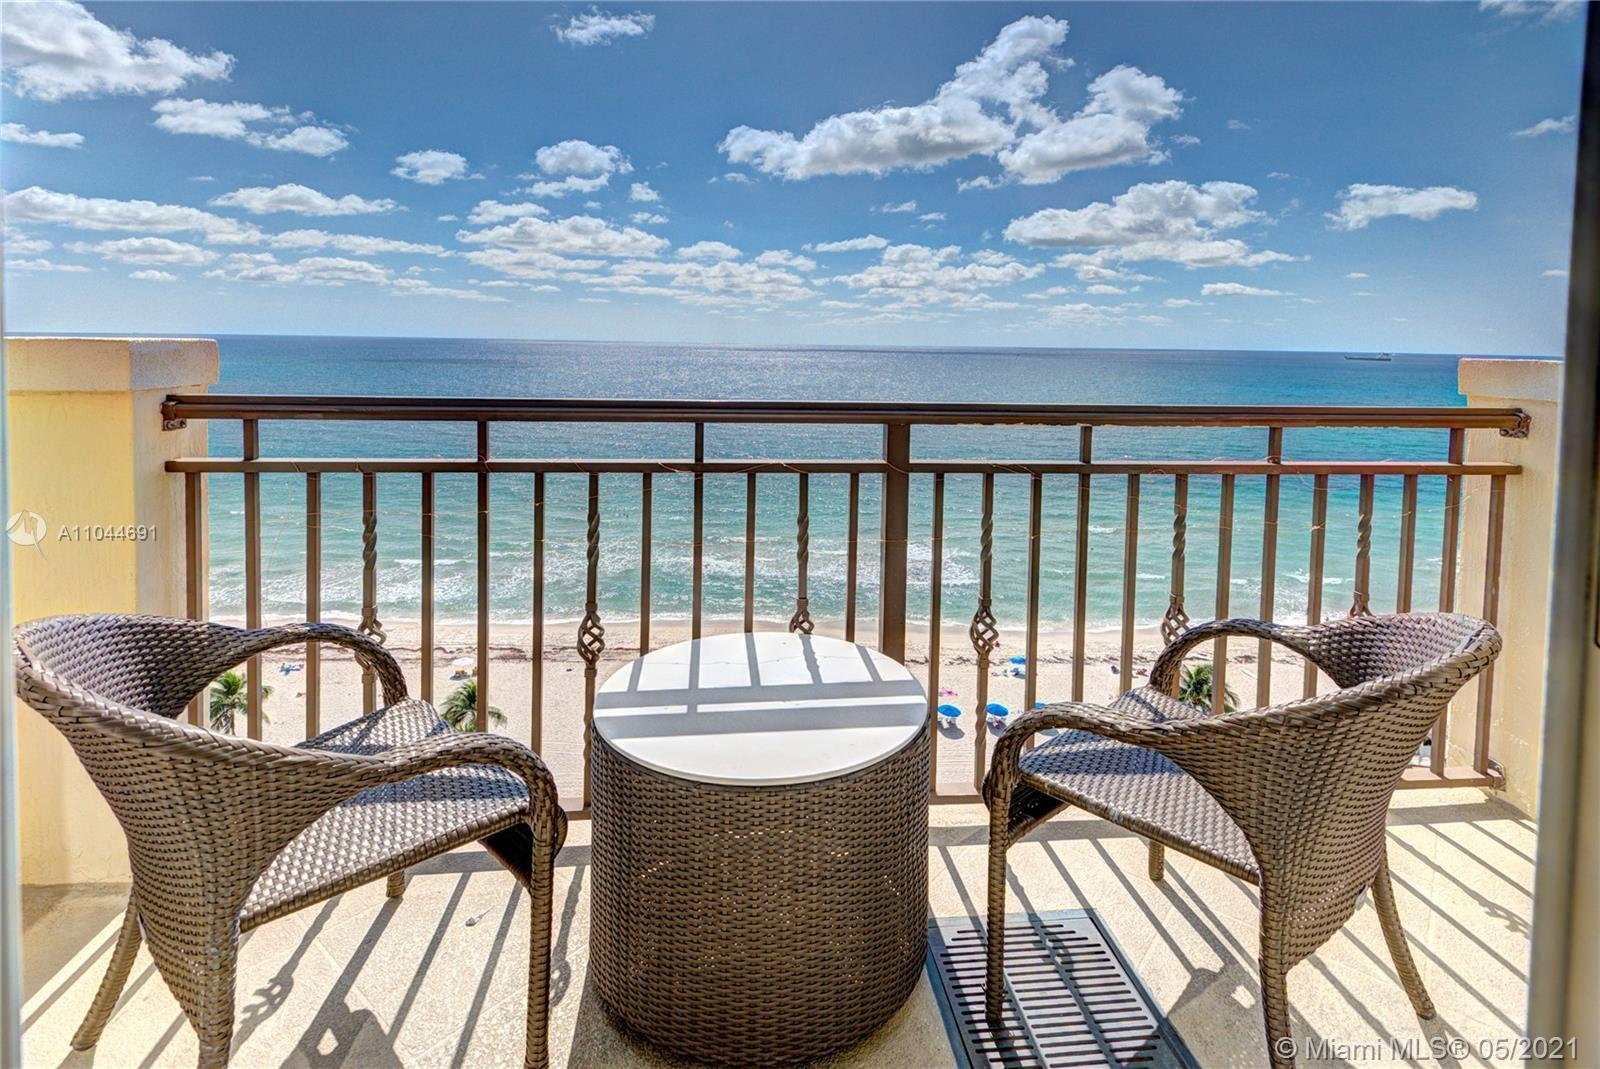 Enjoy this 180 degree unobstructed direct ocean view from your paradise getaway and all of the first